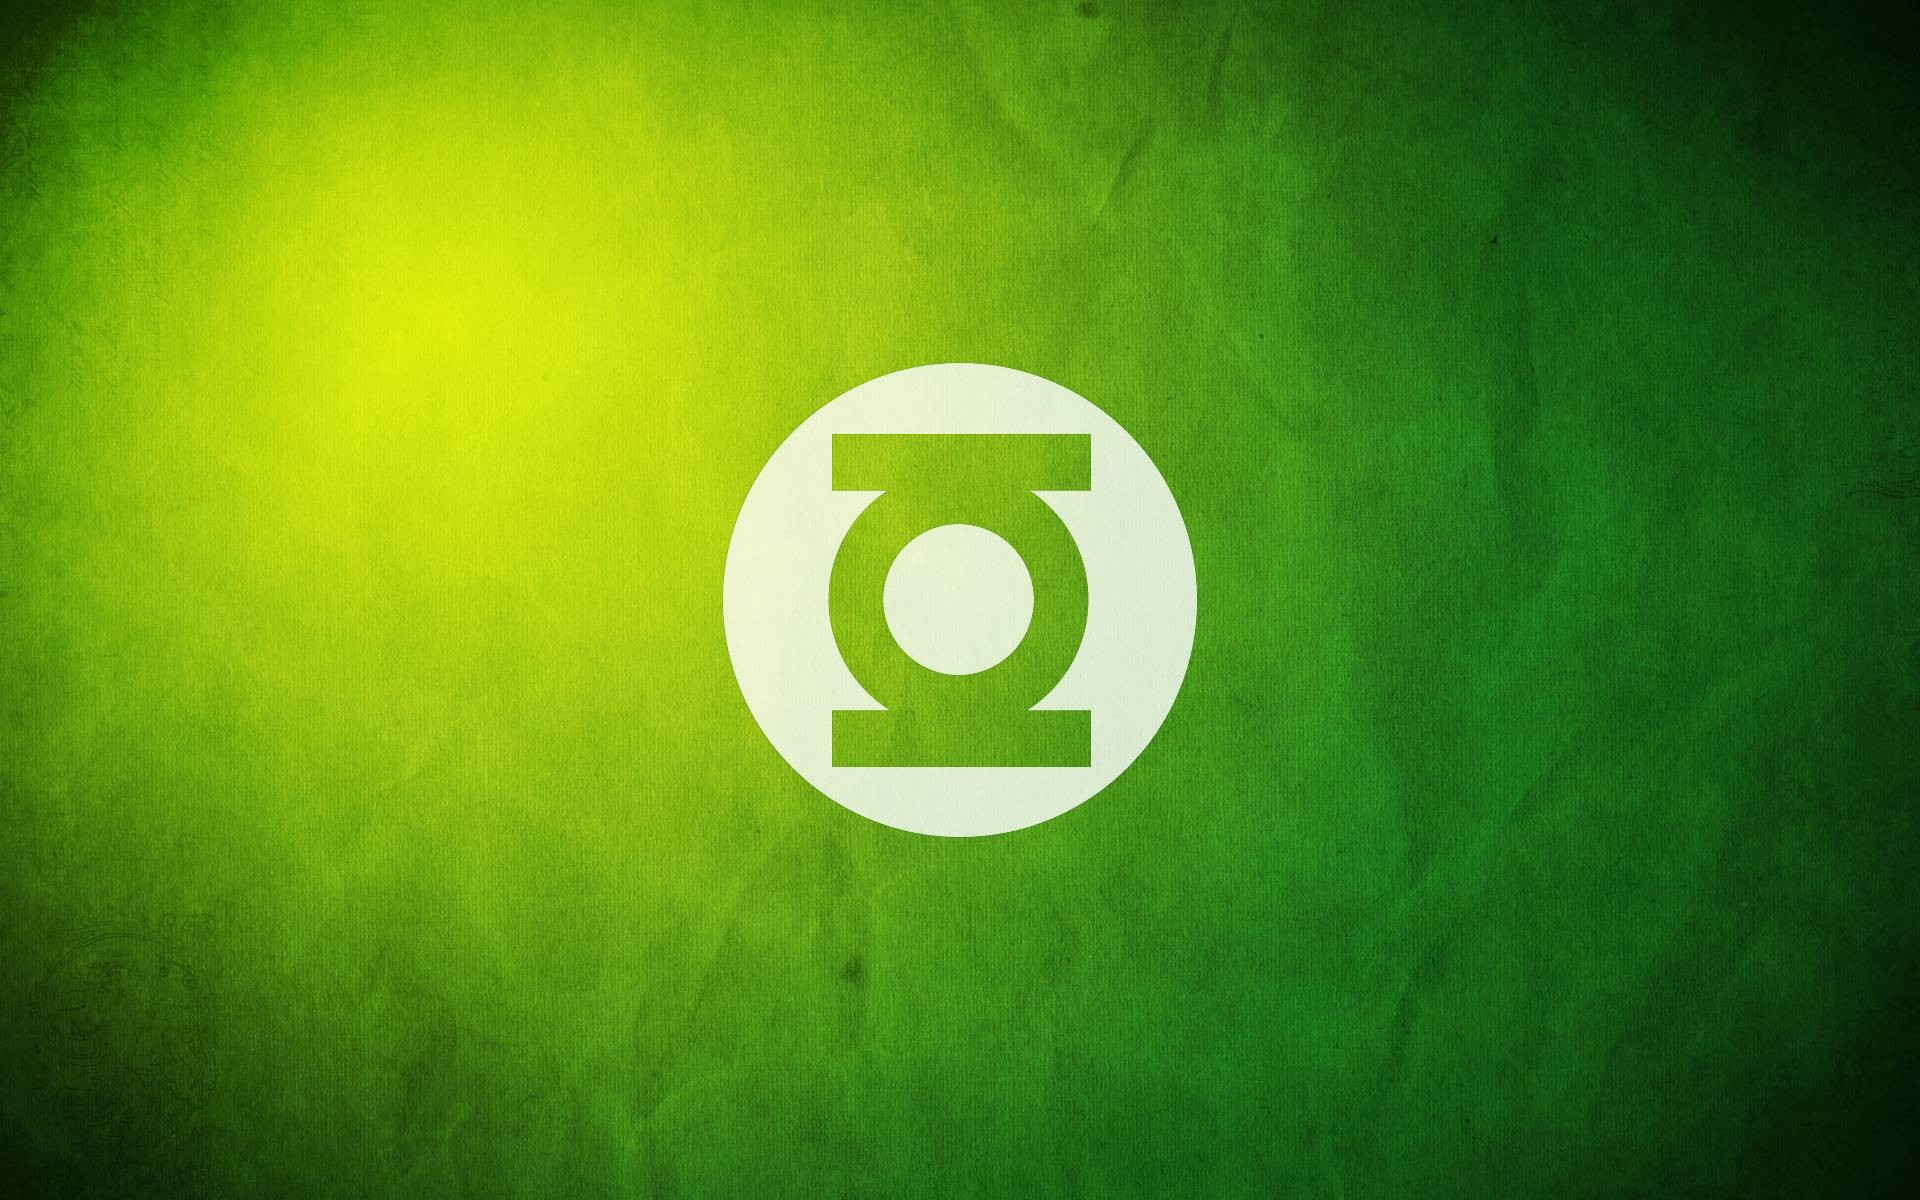 1920x1200 20 Cool Green Lantern Wallpapers